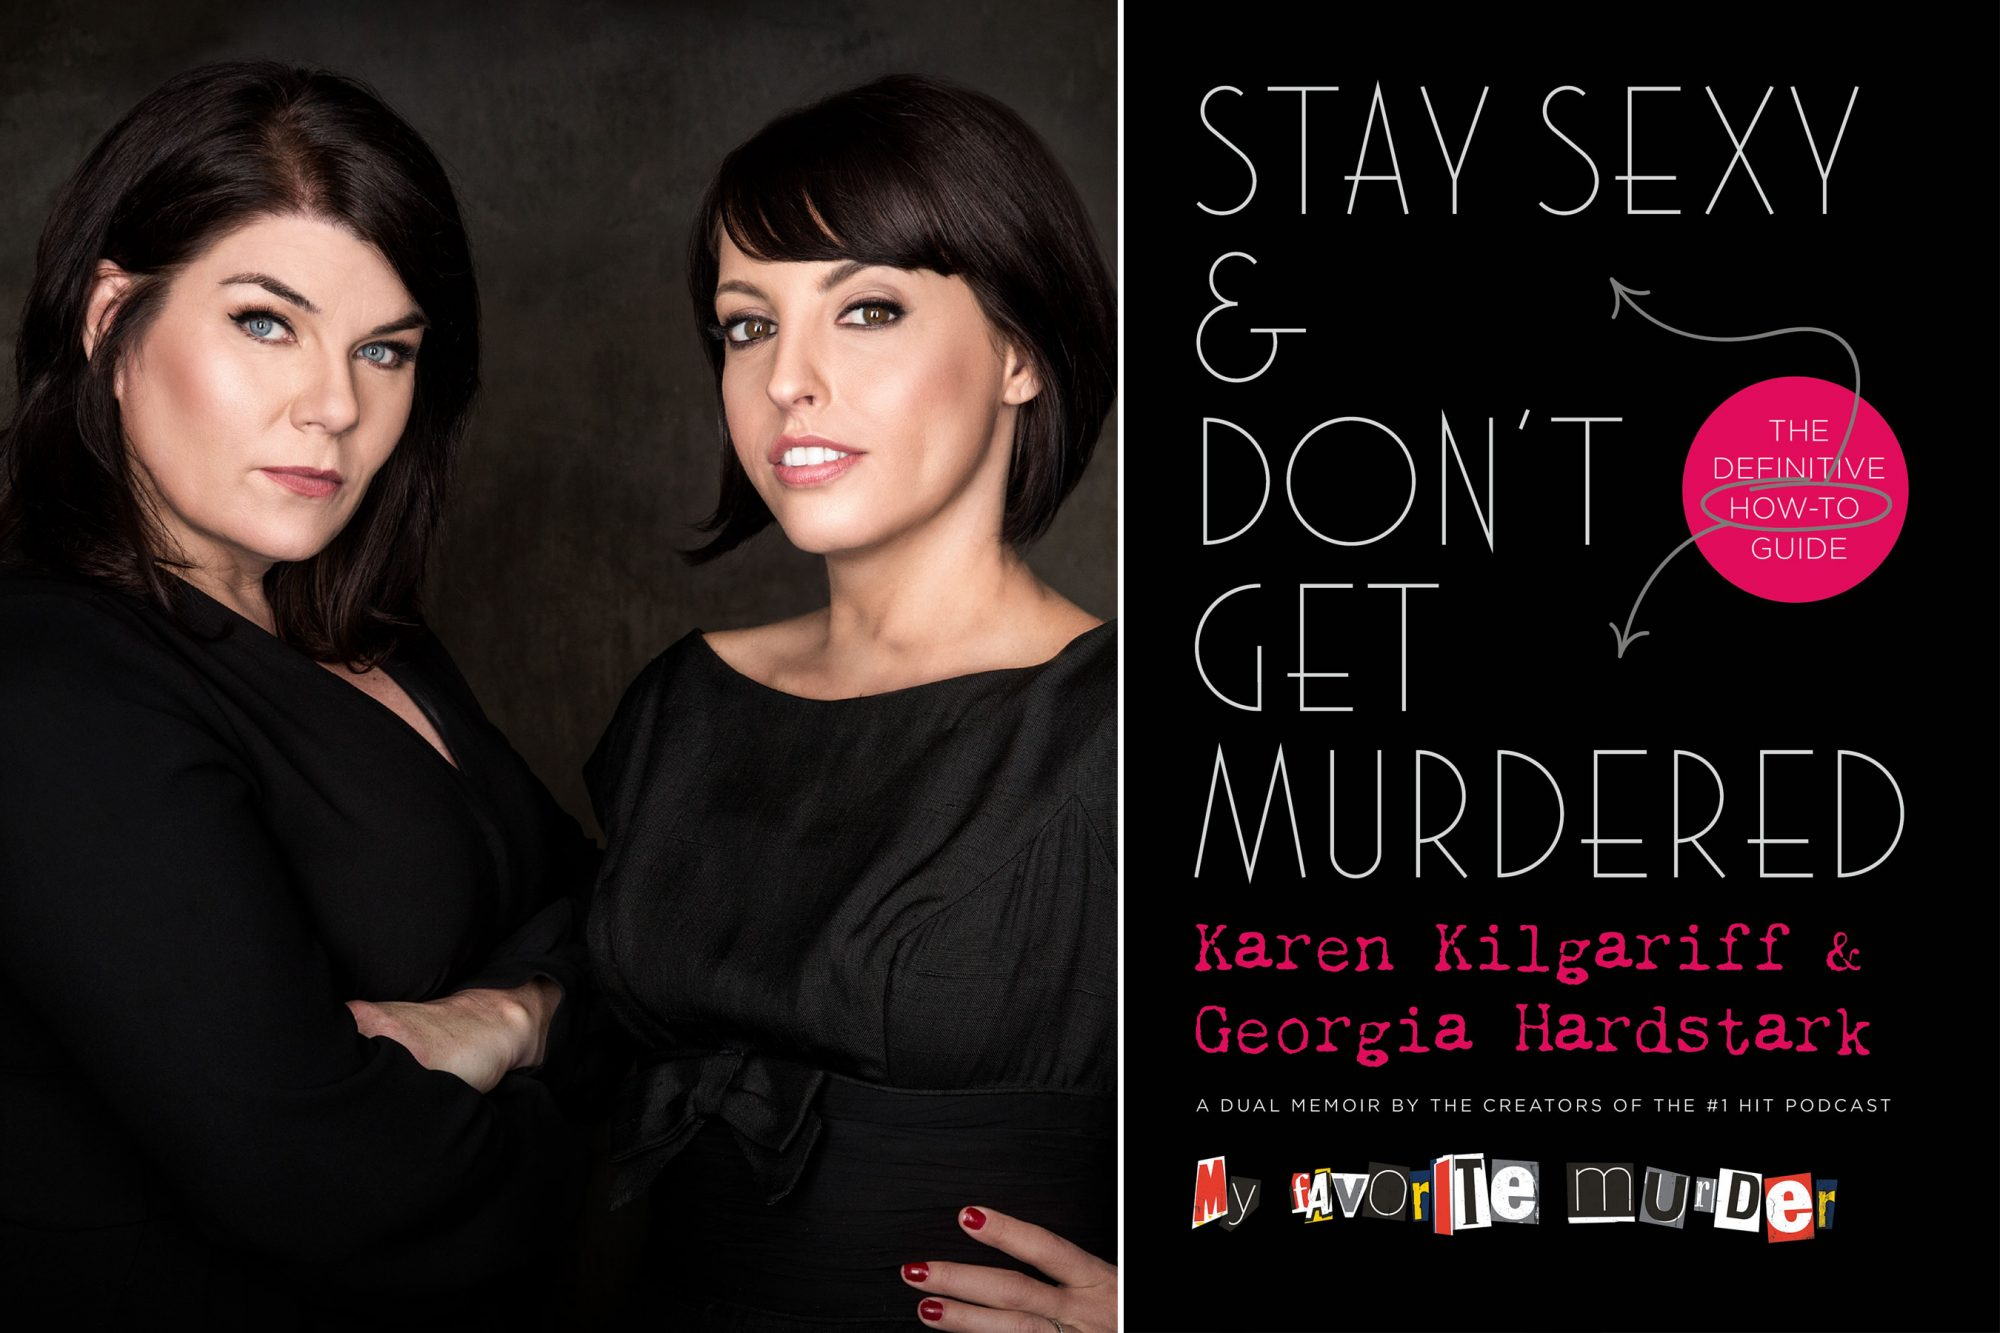 Stay Sexy & Don't Get Murdered by Karen Kilgariff and Georgia Hardstark